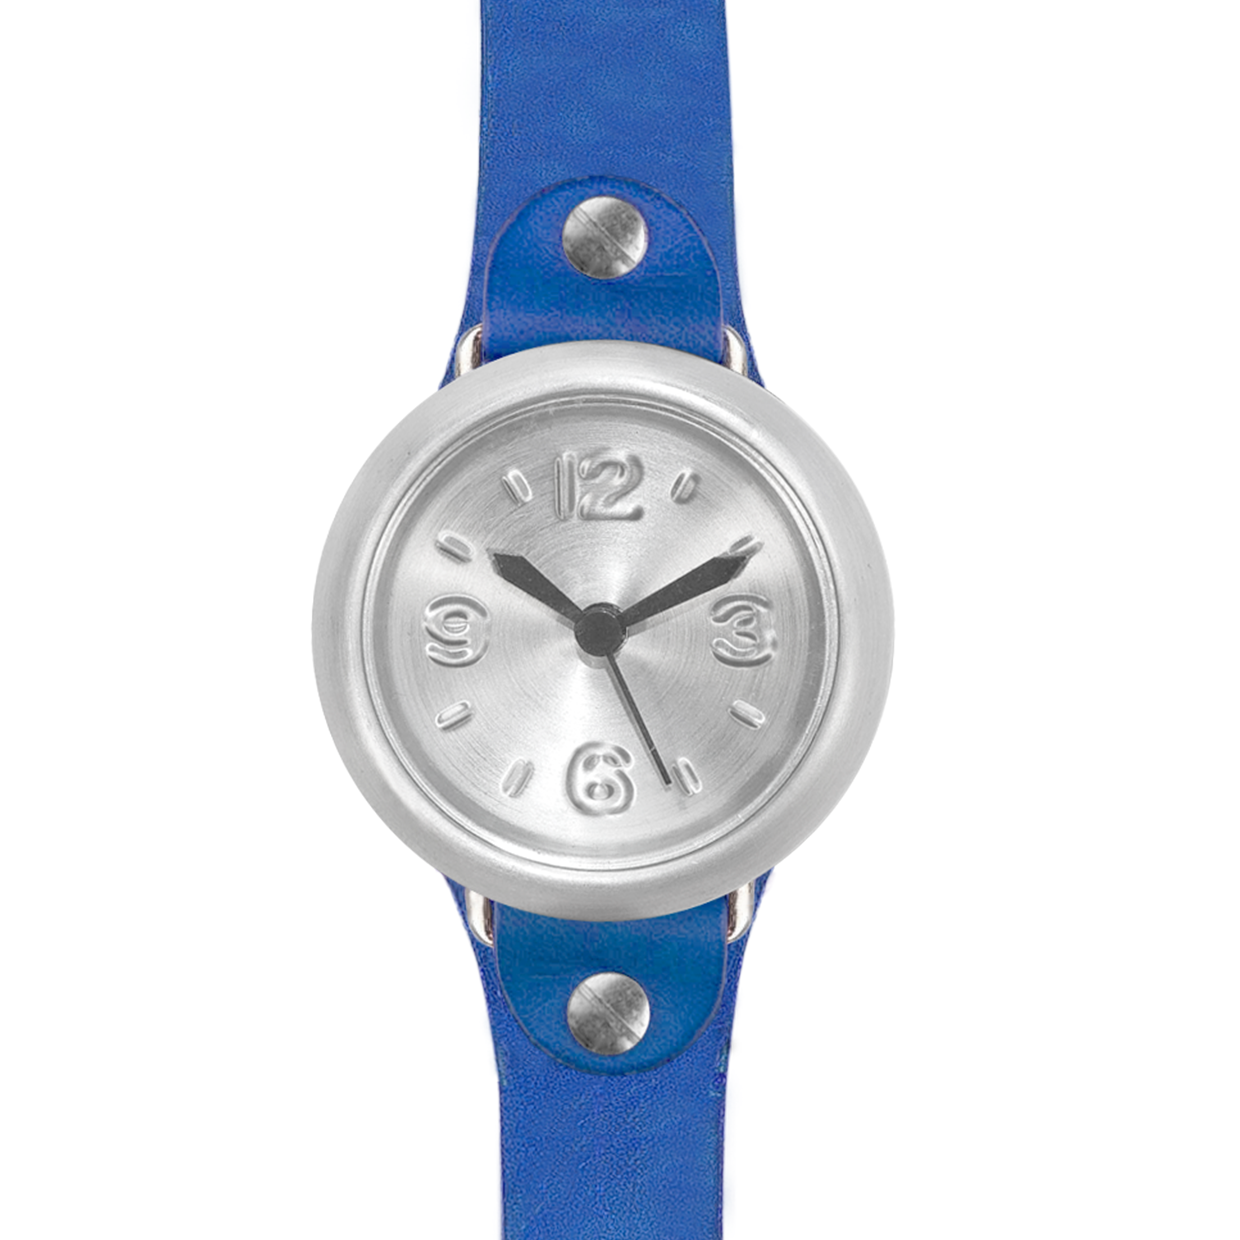 CAN_WATCH_Sno_blue